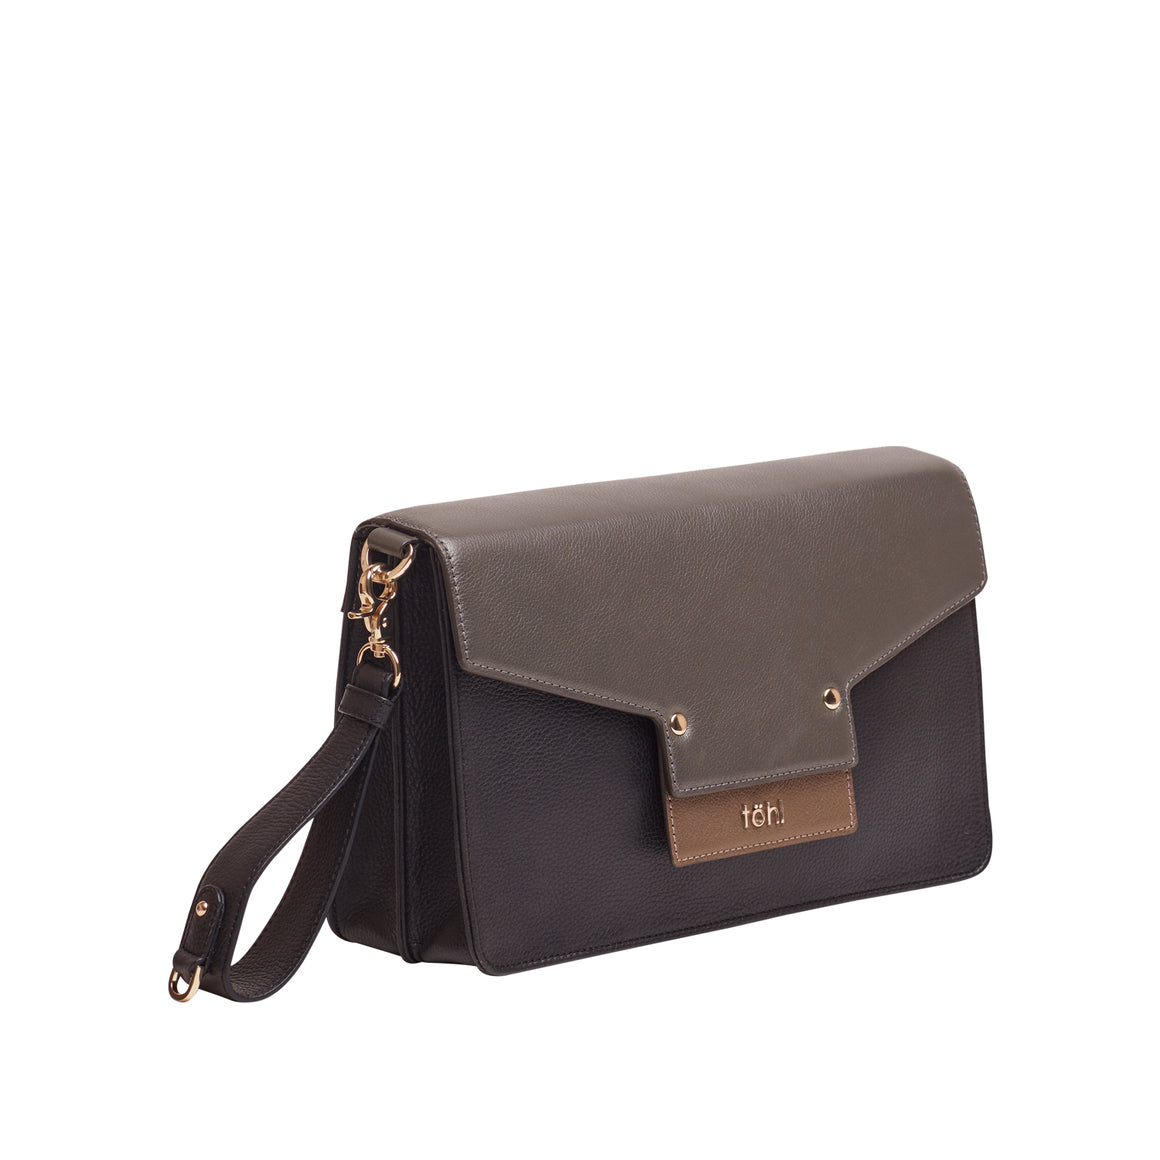 CH 0011 - TOHL CALETA WOMEN'S CLUTCH - CHARCOAL BLACK